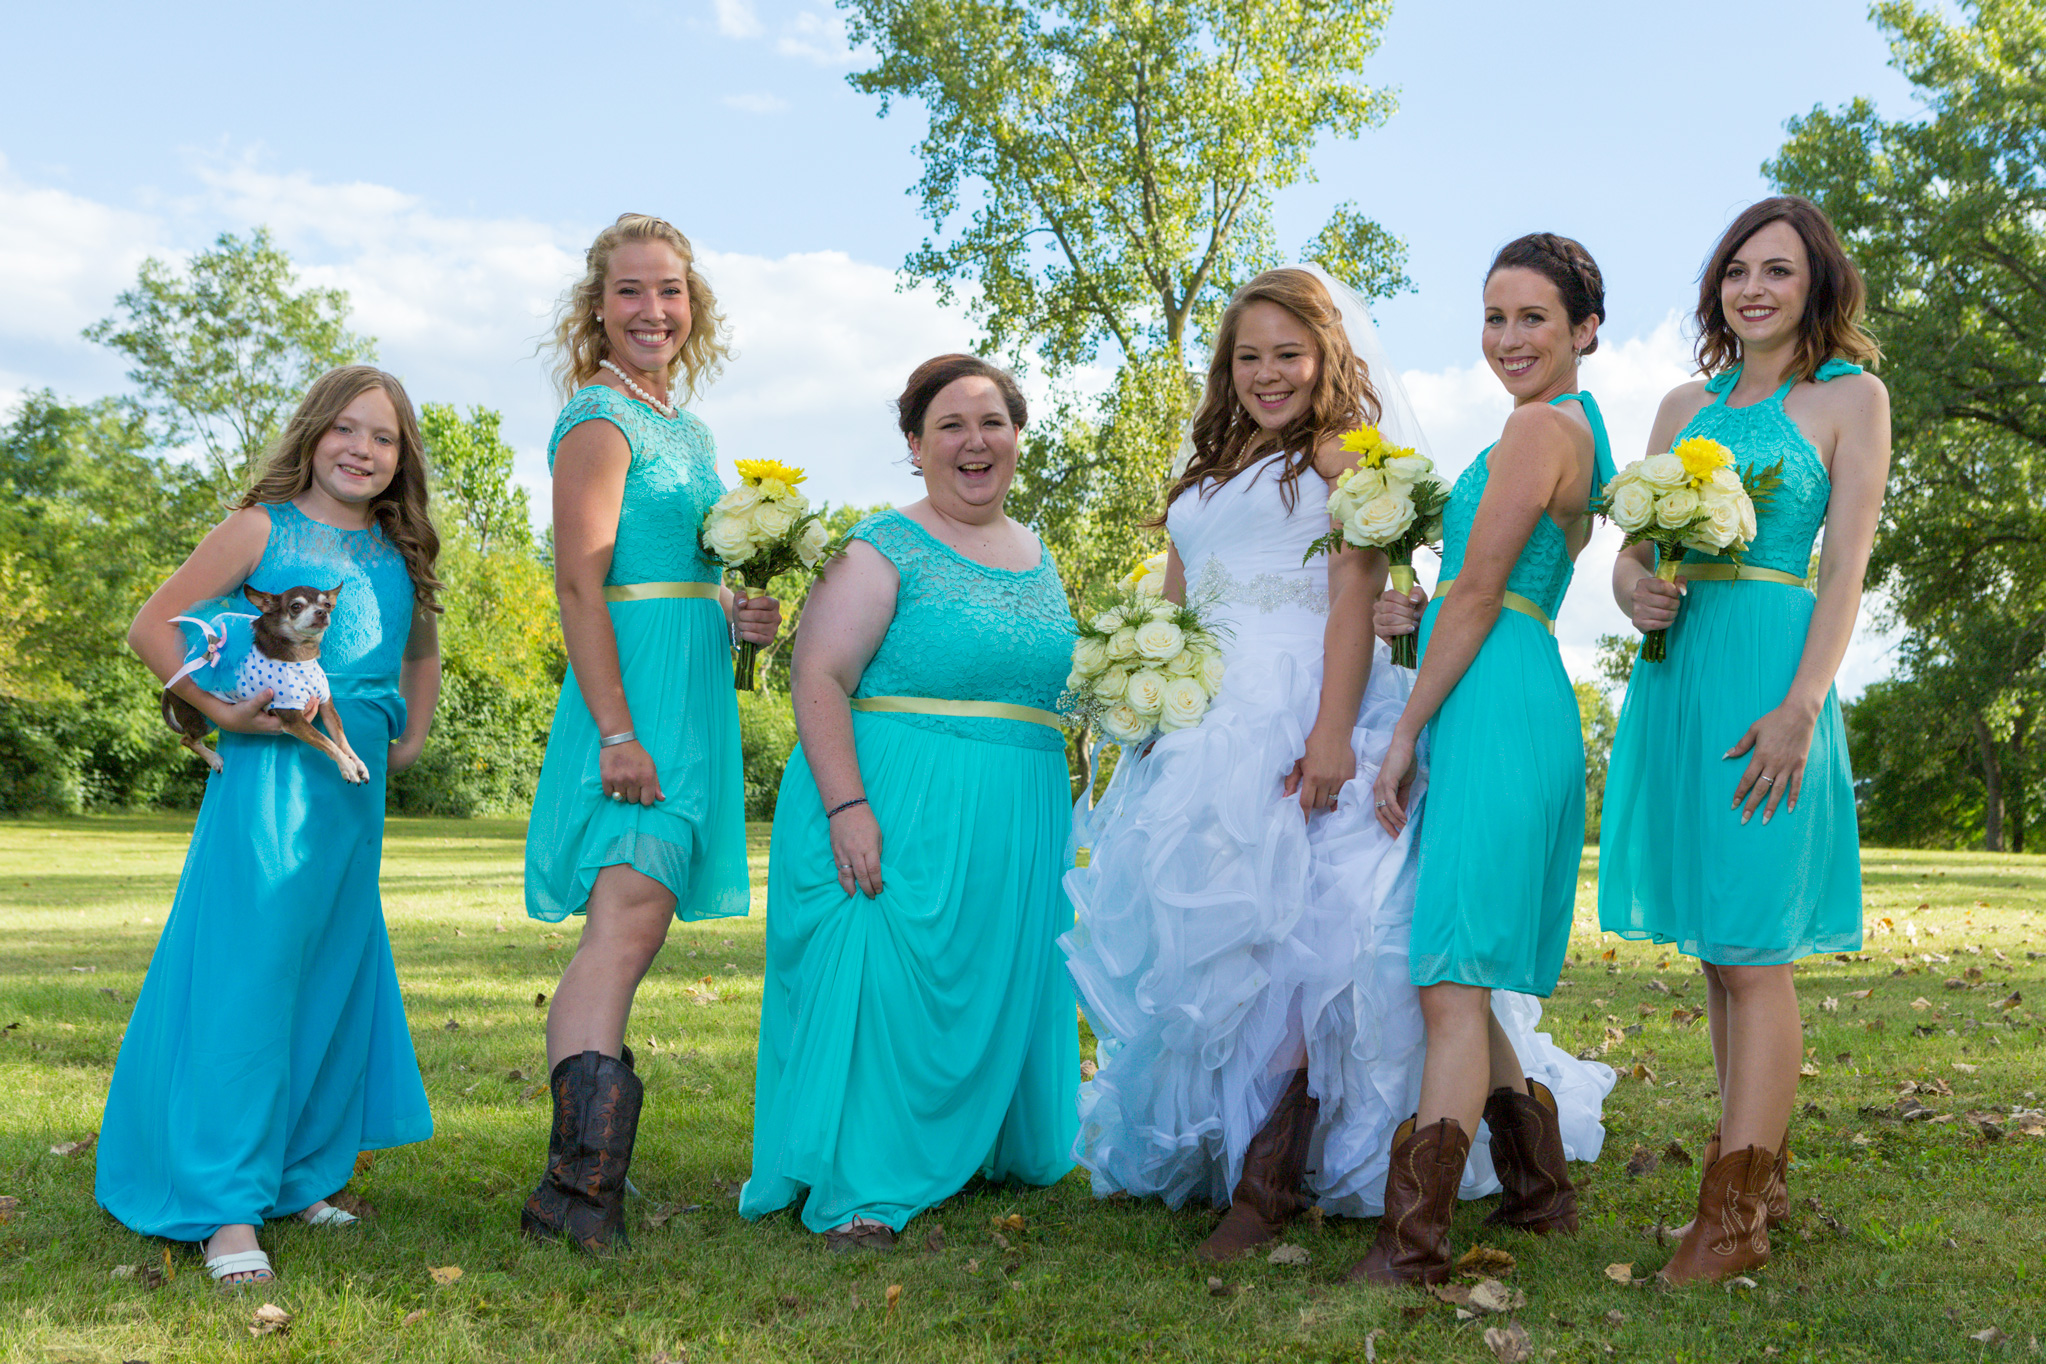 bride_bridemaids_formal_photograph_4.jpg